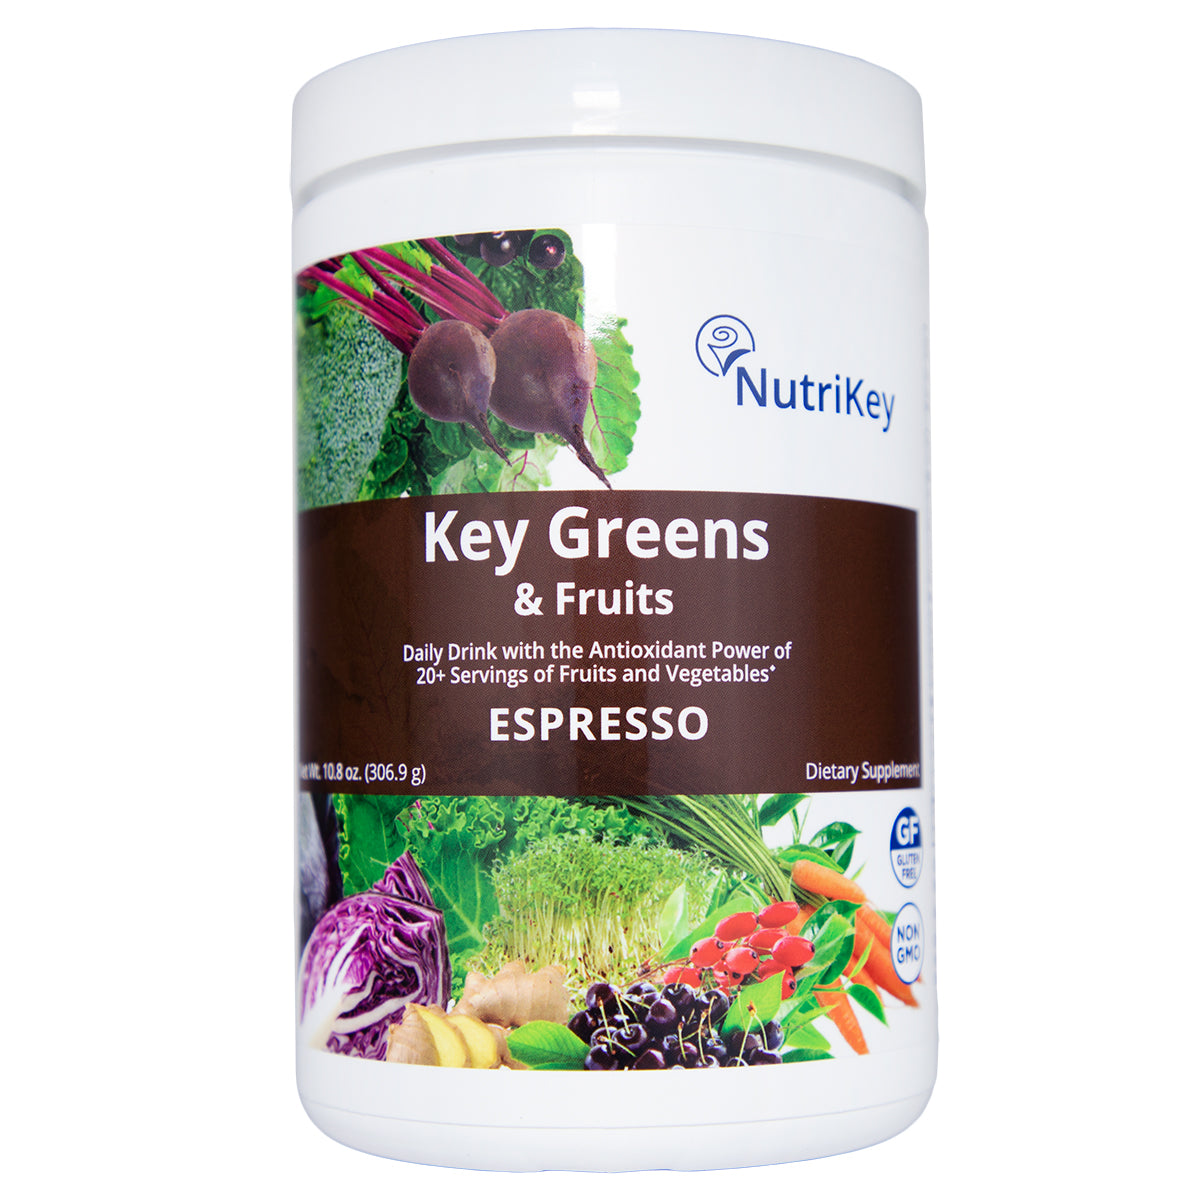 Key Greens & Fruits Canister, Espresso